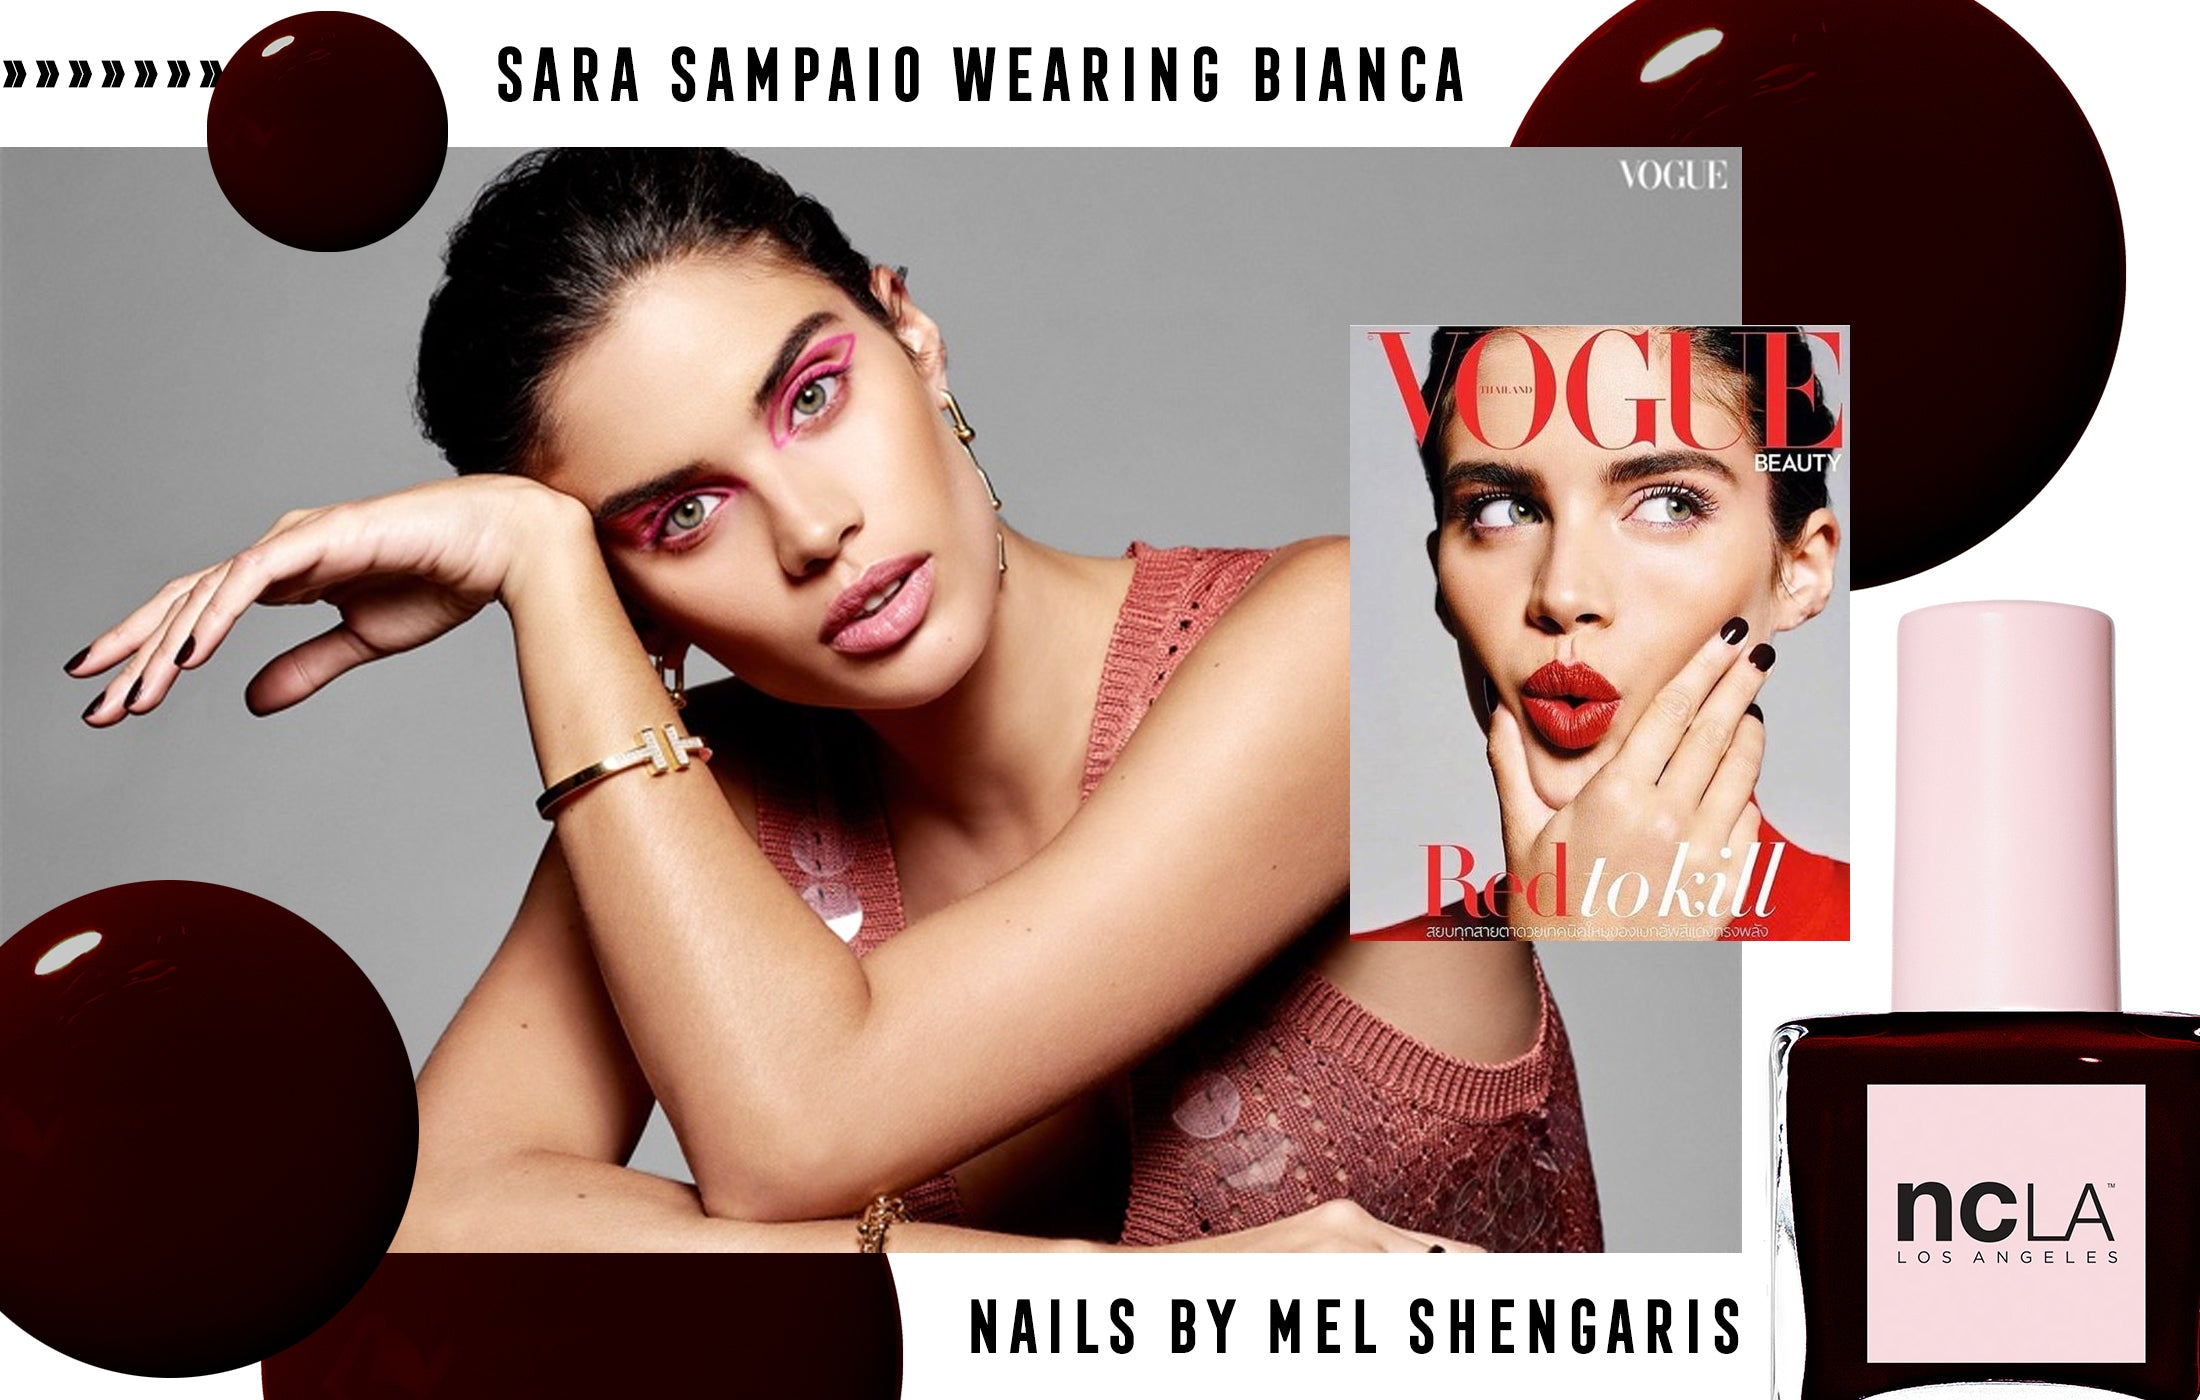 Sara Sampaio weaing NCLA on the cover of Vogue Thailand!